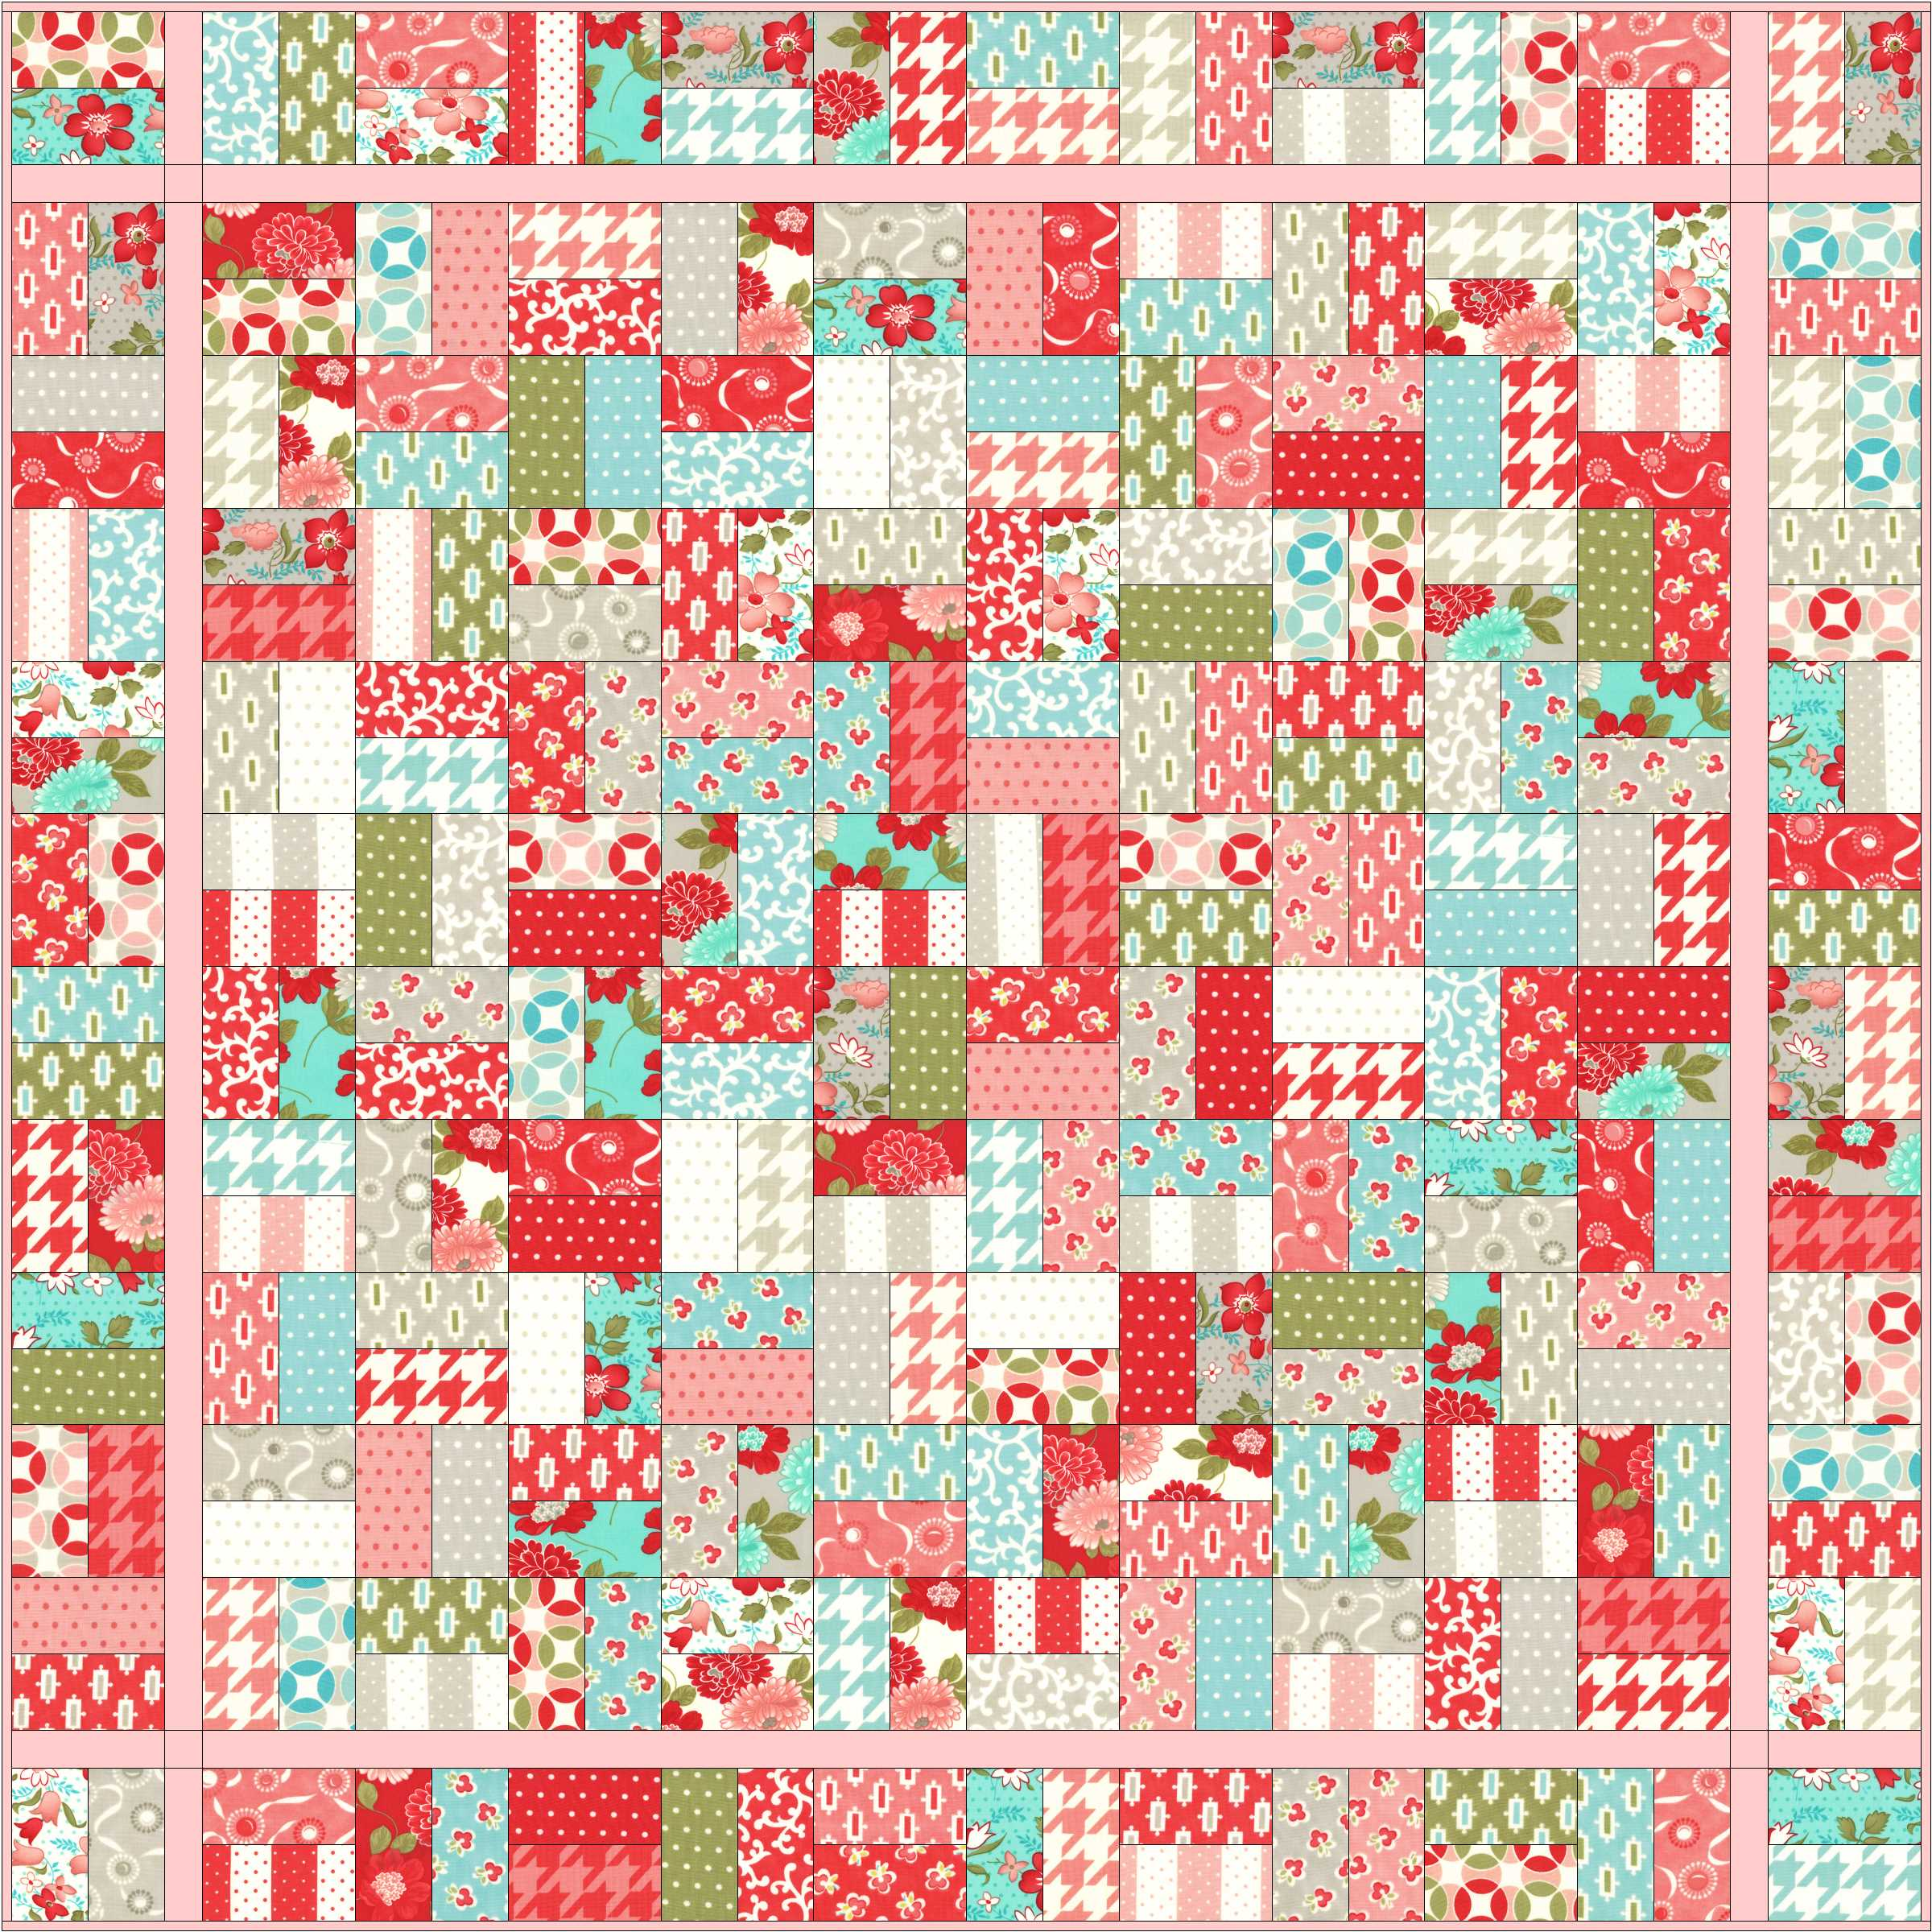 Christa's Quilts – The Jolly Jelly Roll Quilt – Christa Quilts